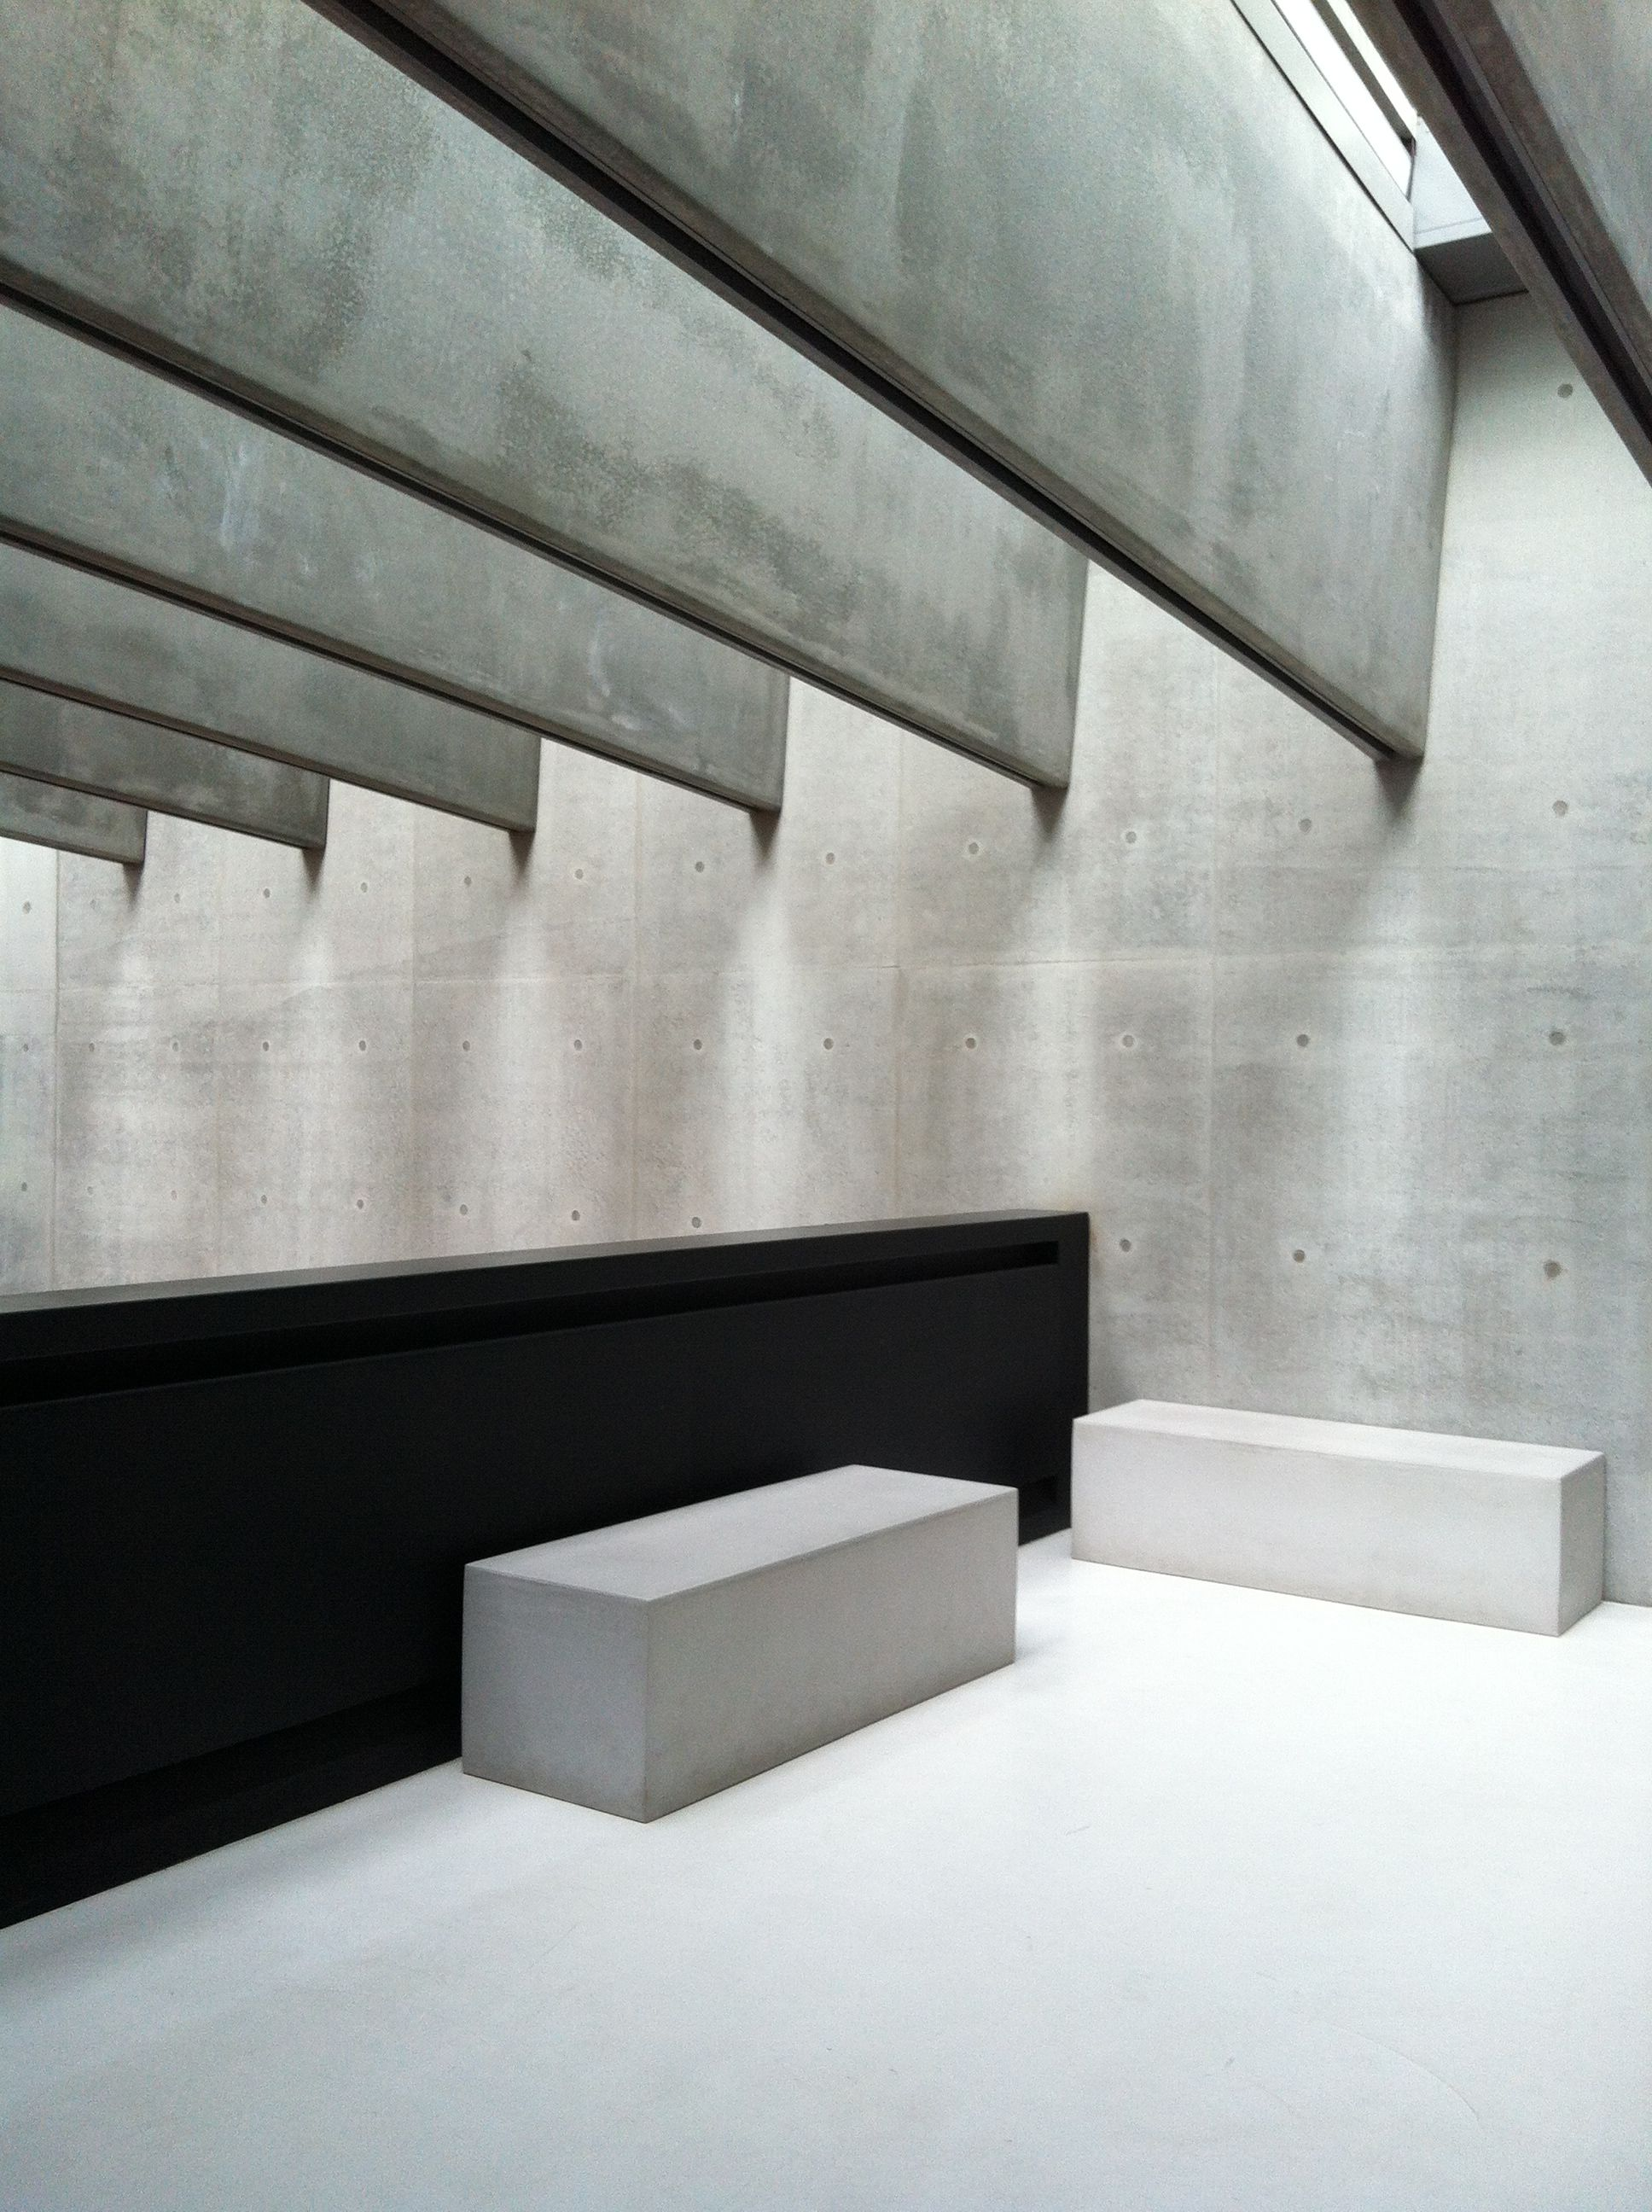 Massive Concrete Beams Bench Perfect In Situ Concrete Walls With Exposed Spacers Amazing